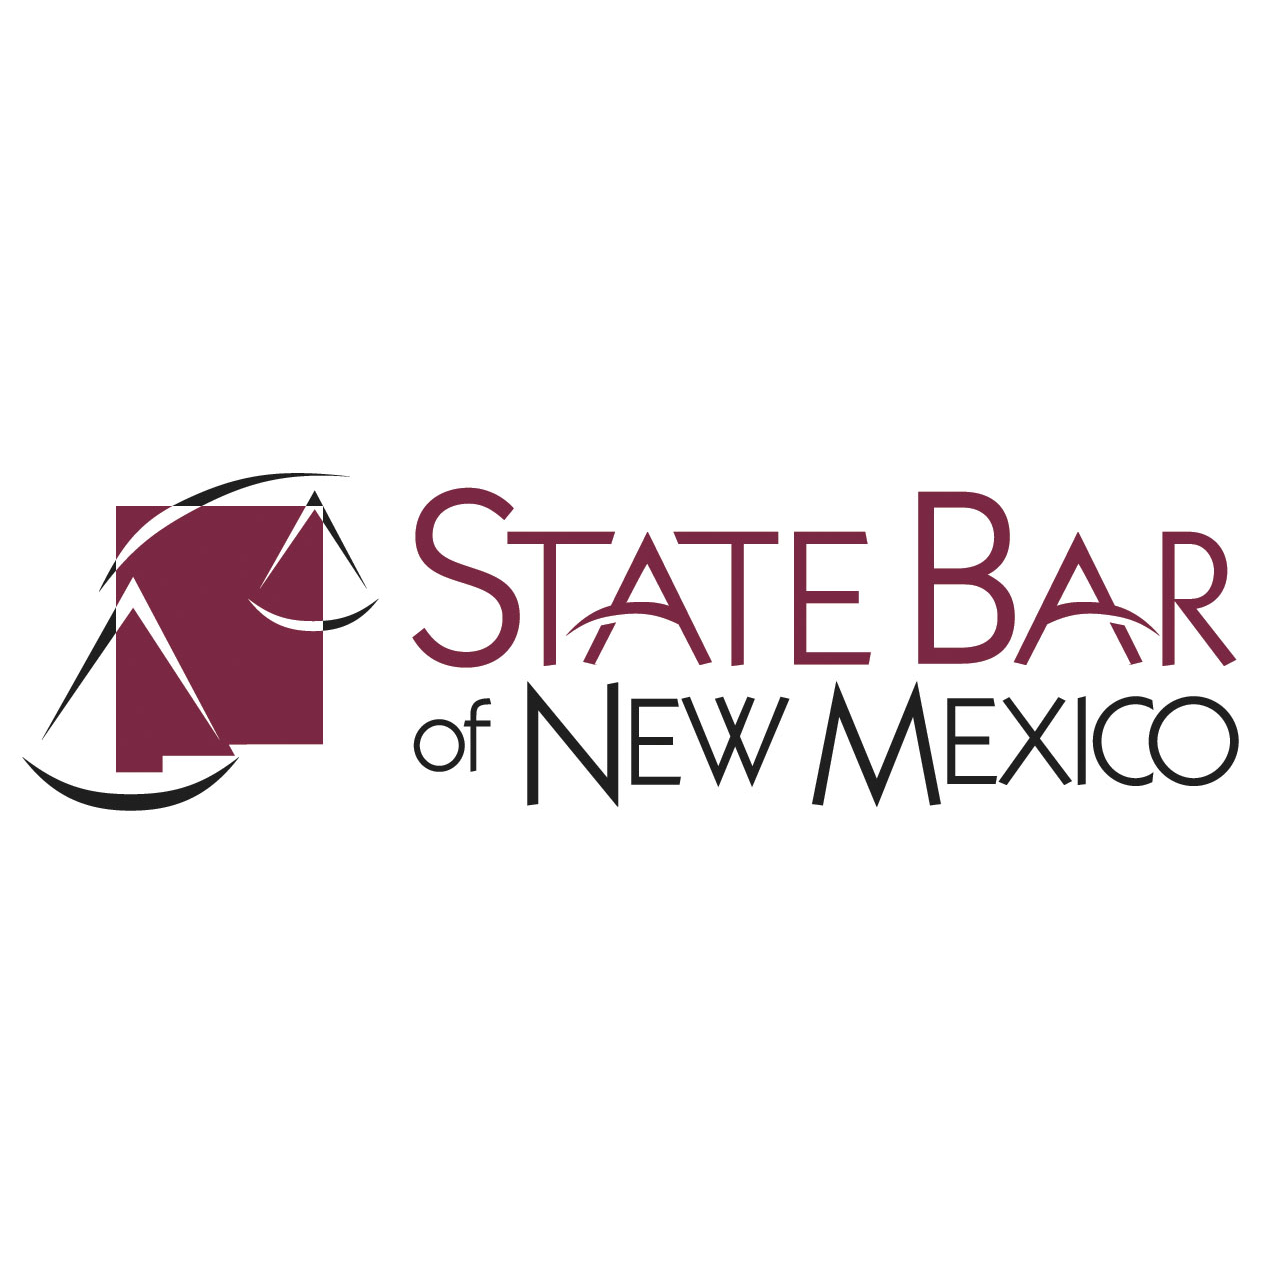 New Mexico State Bar